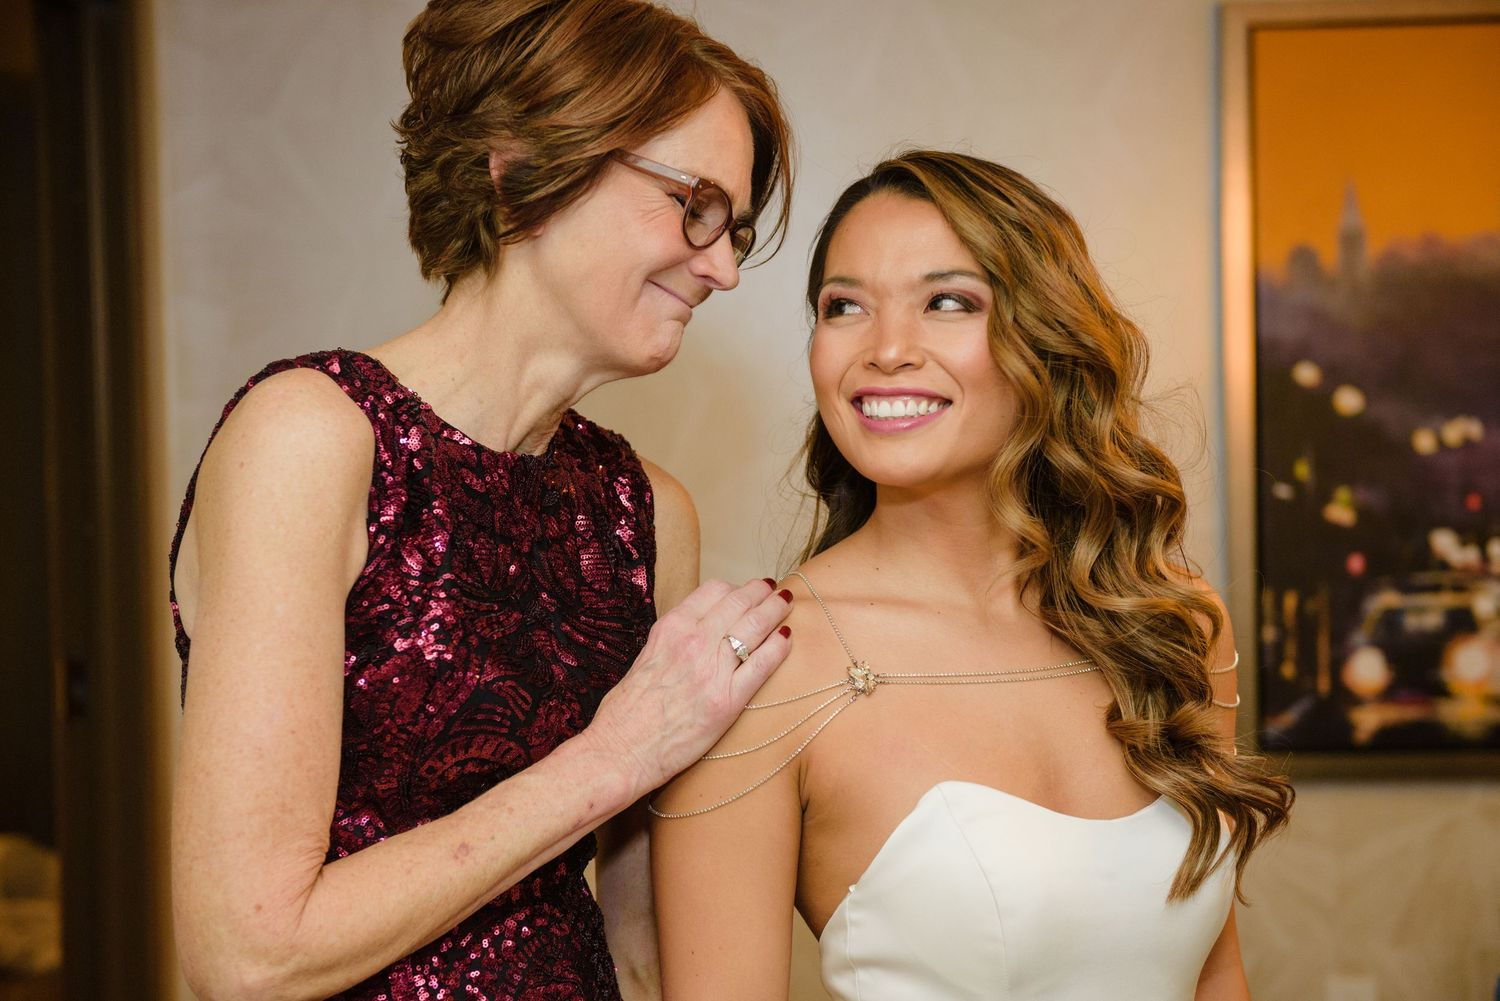 Bride and Mother getting ready for wedding at Cleveland Hilton